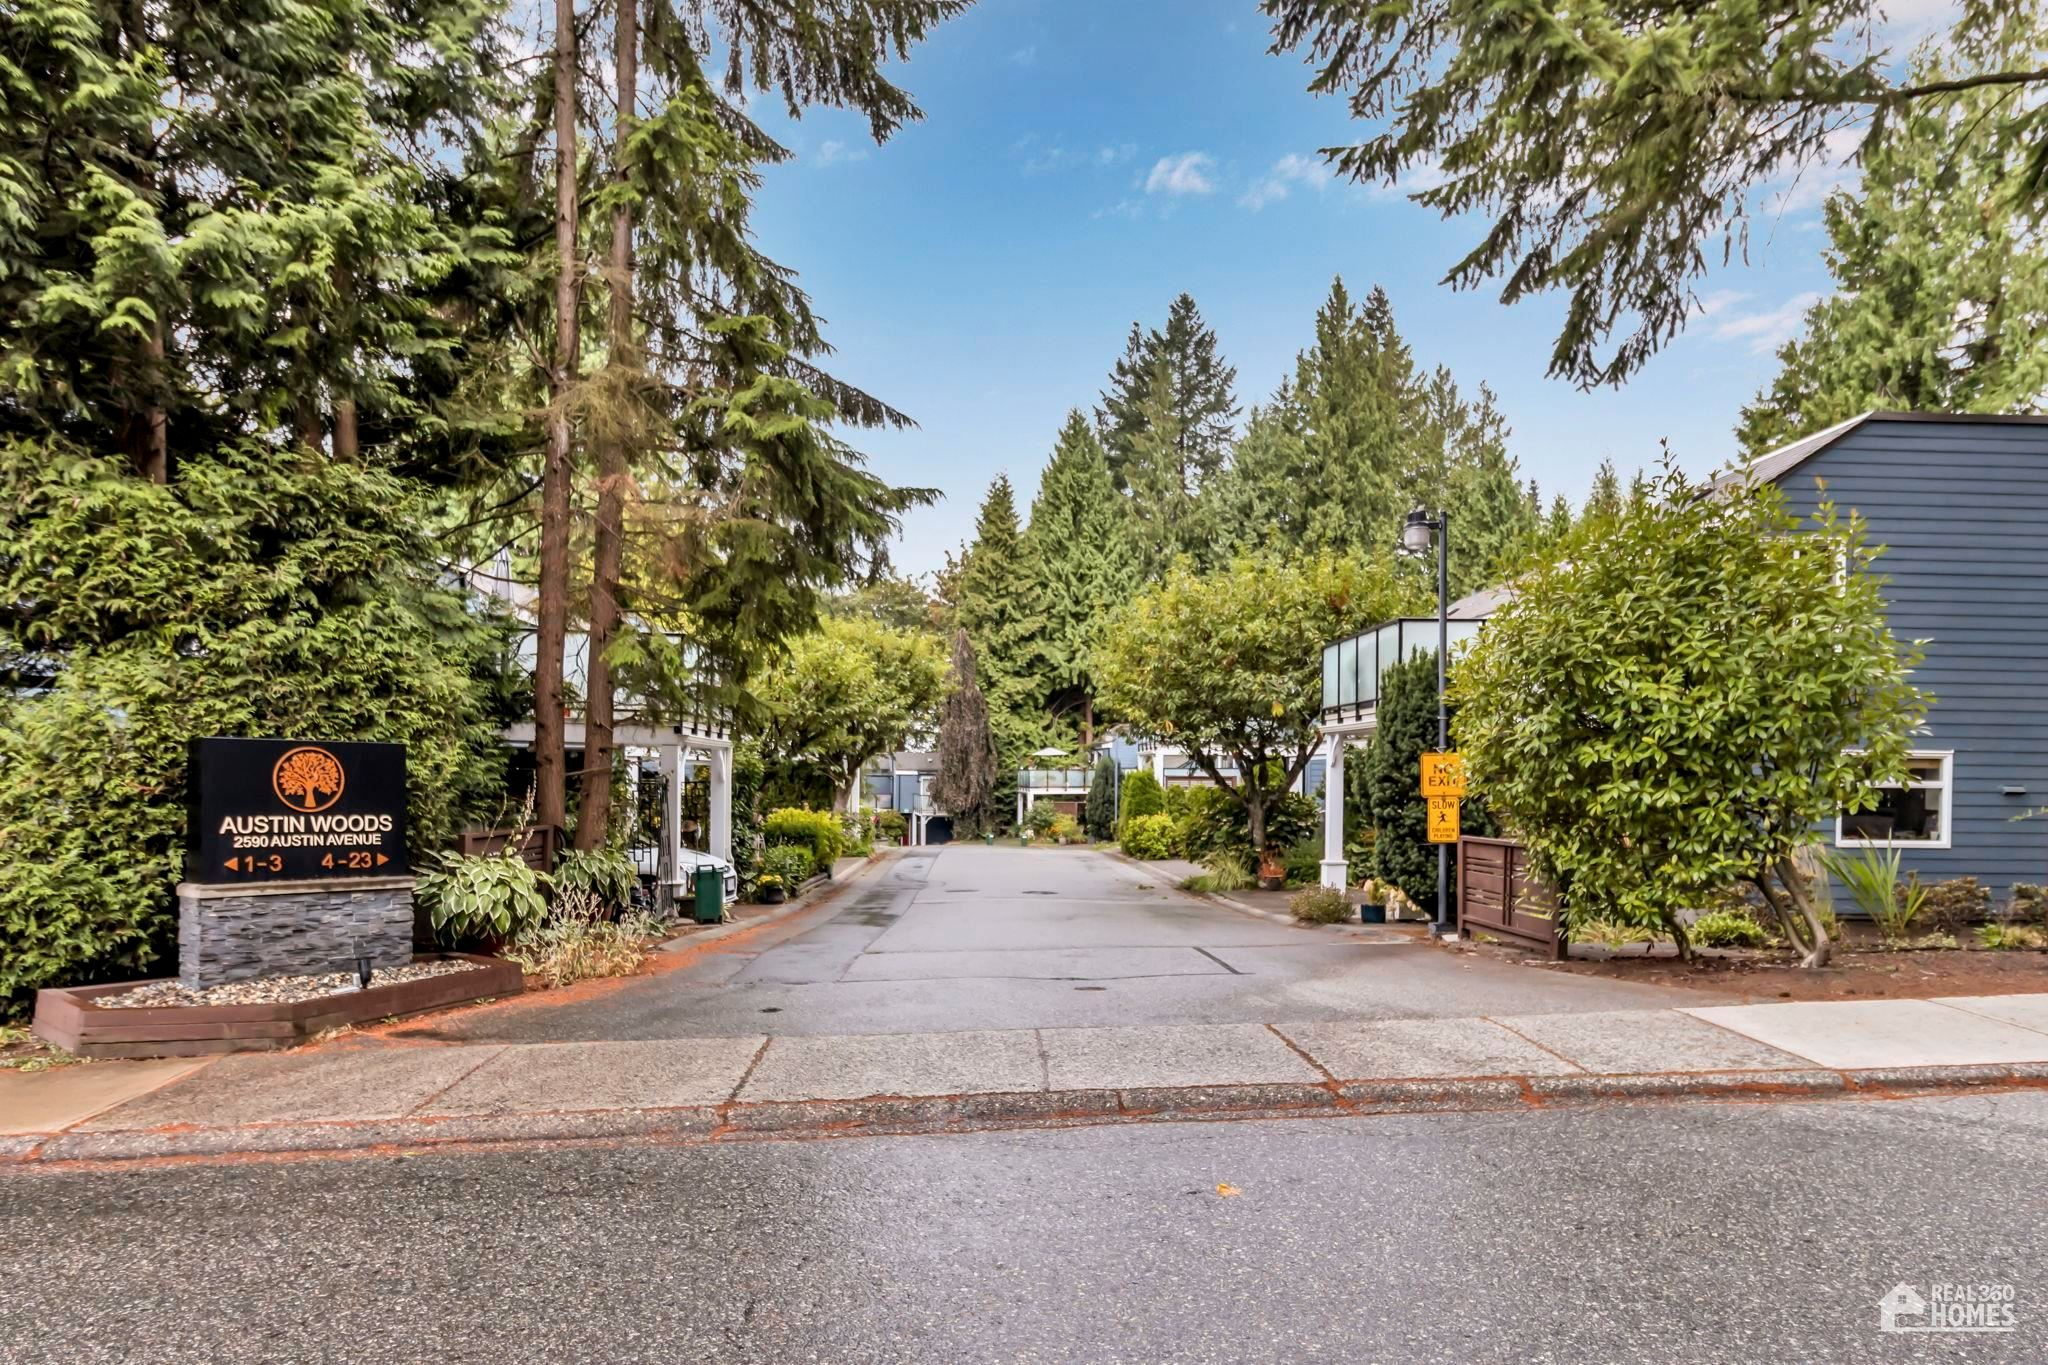 Main Photo: 17-2590 Austin Ave in Coquitlam: Coquitlam East Townhouse for sale : MLS®# R2611738